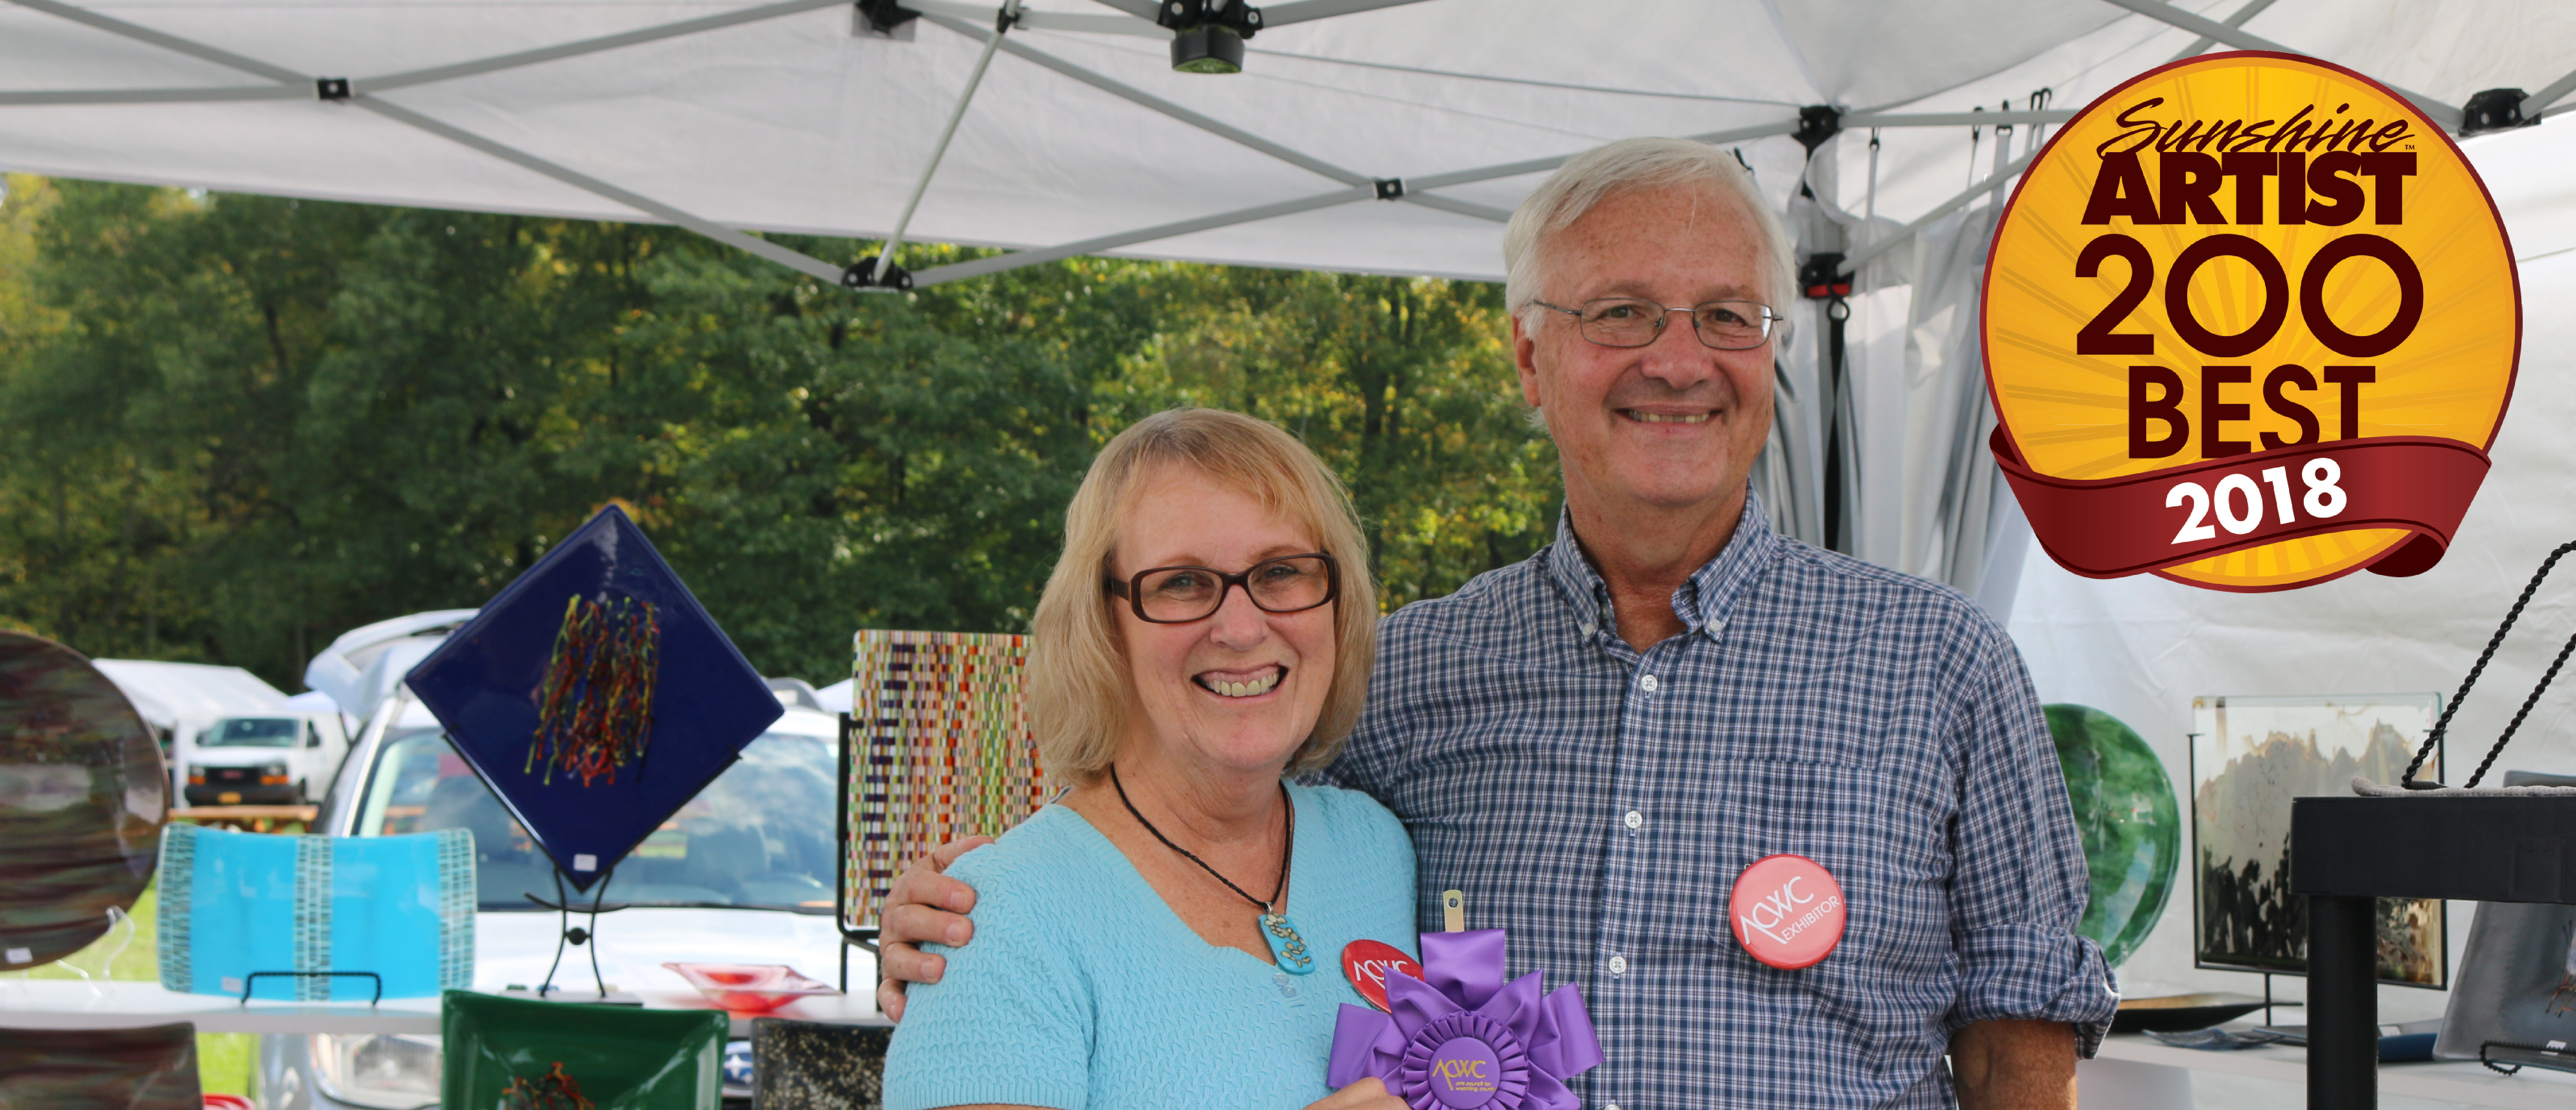 Letchworth Arts and Crafts Show